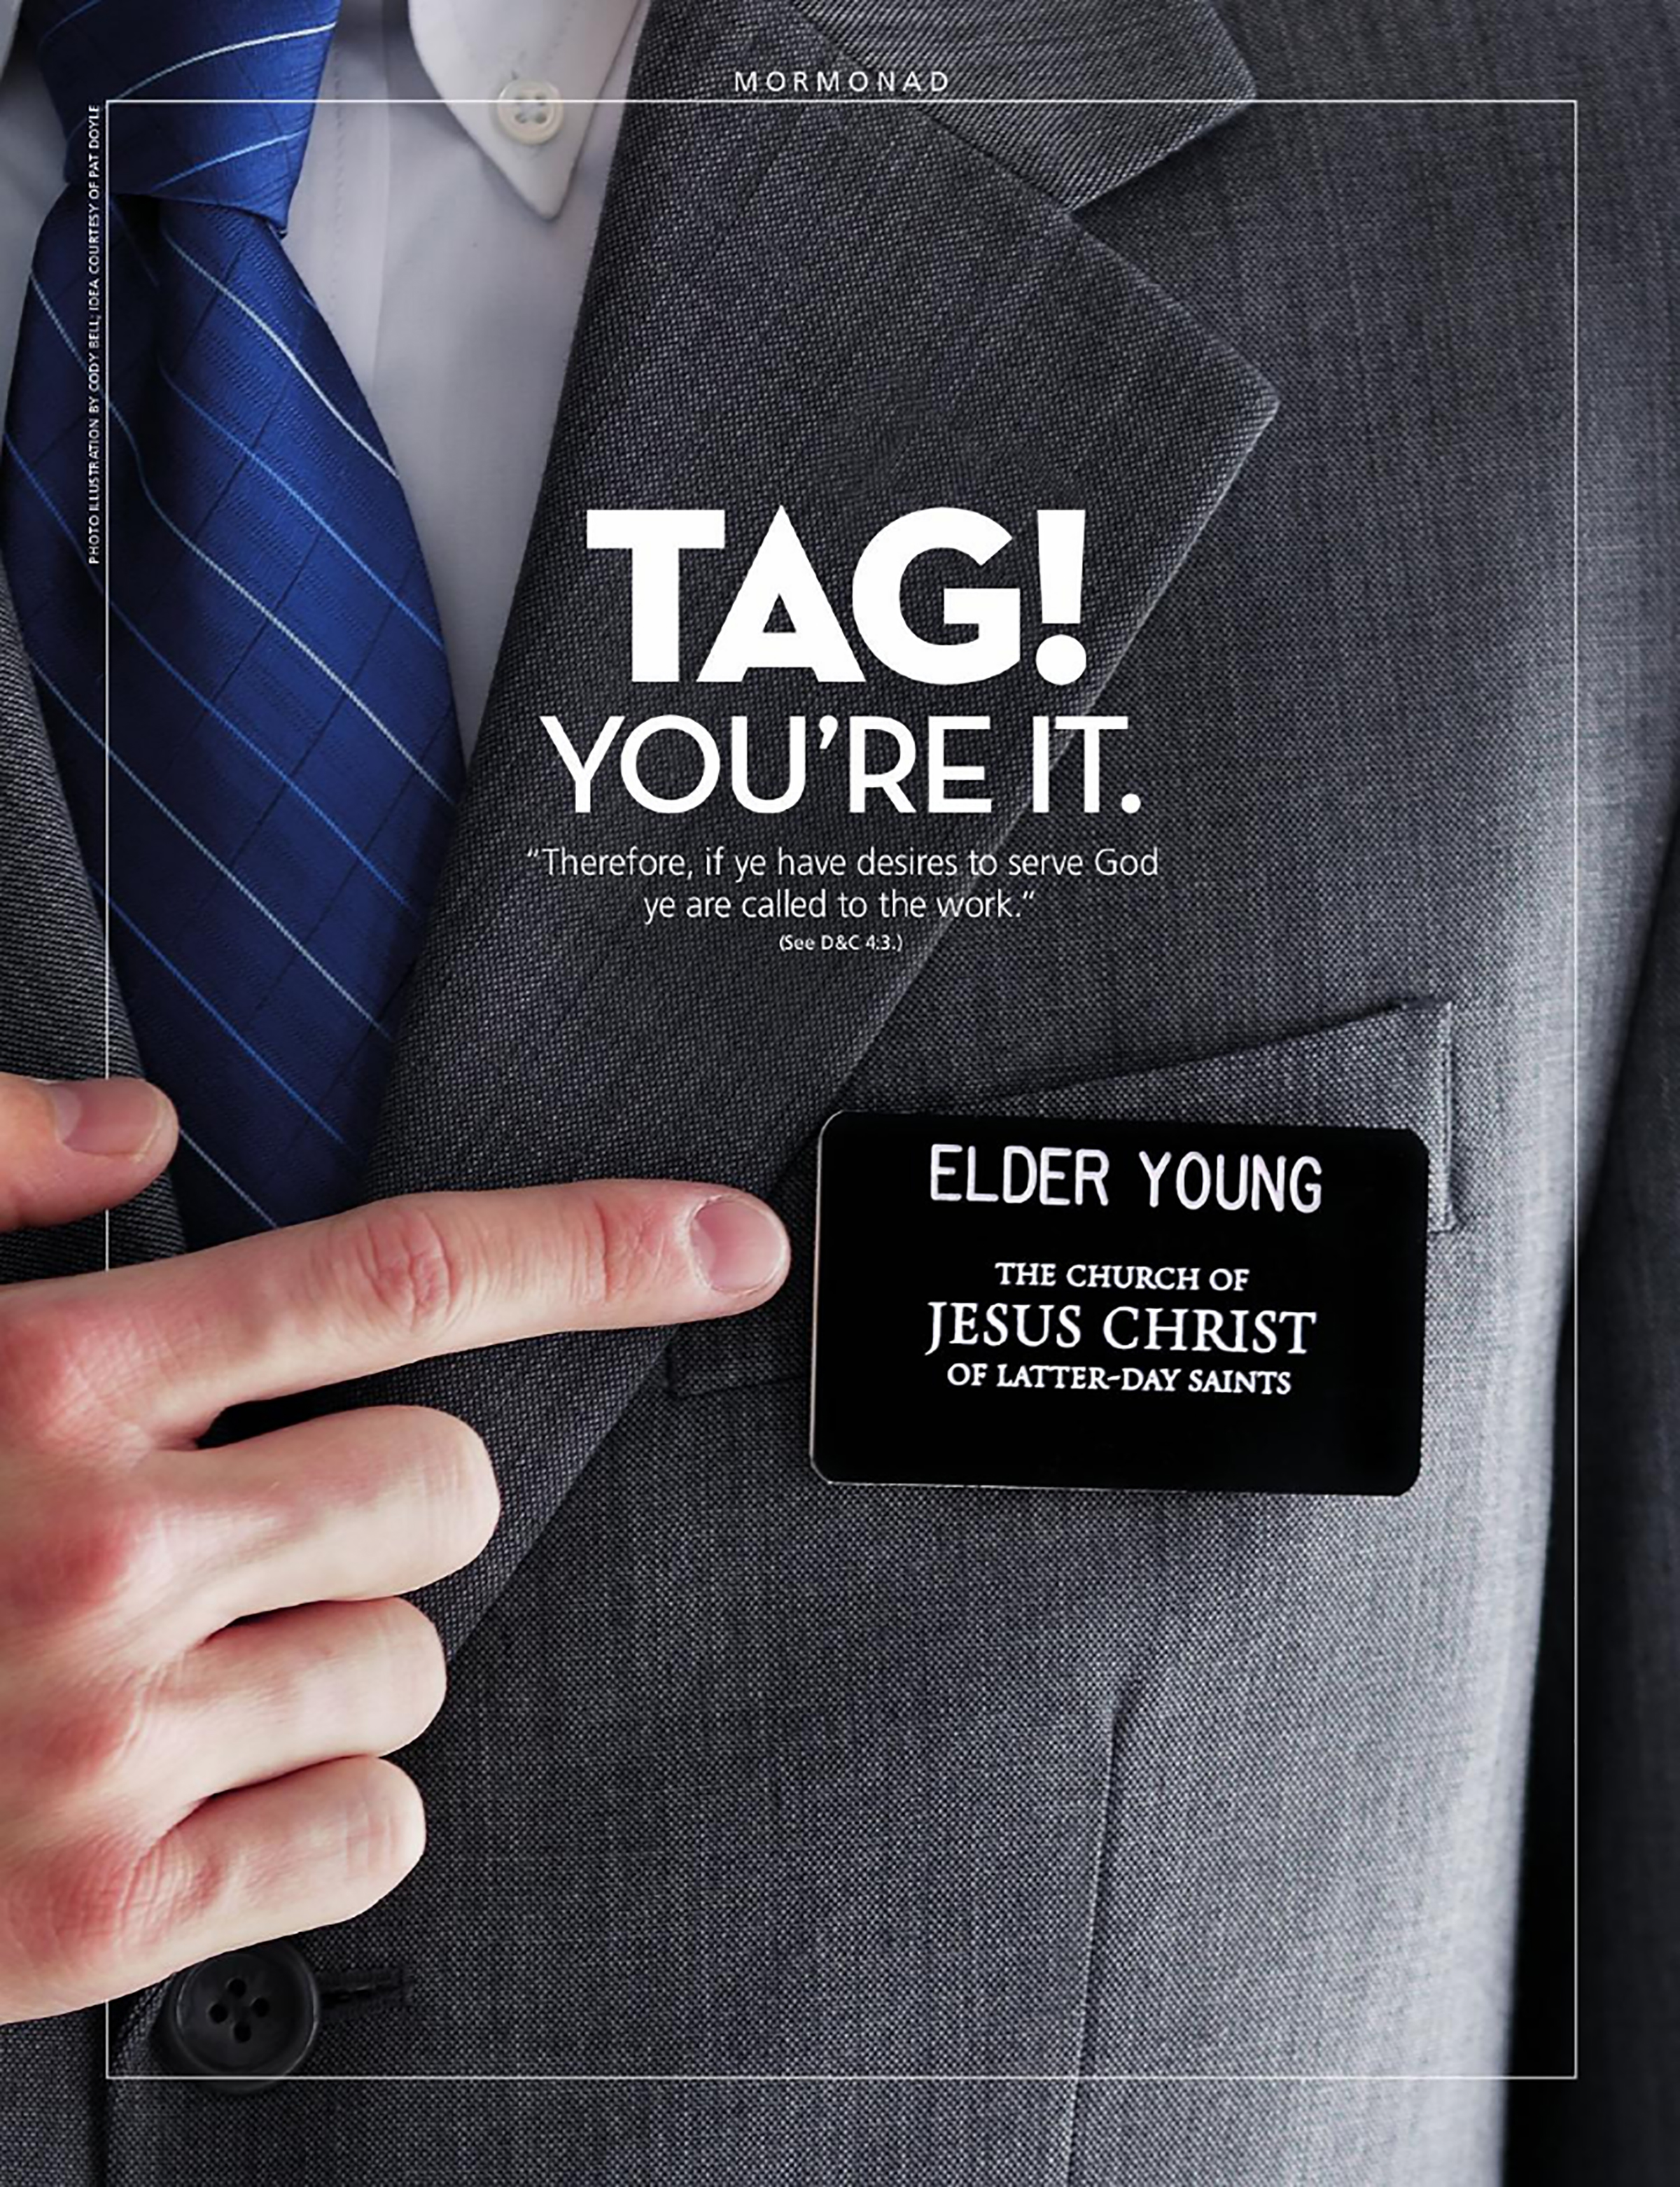 graphic relating to Lds Missionary Name Tag Printable named Tag! Youre It